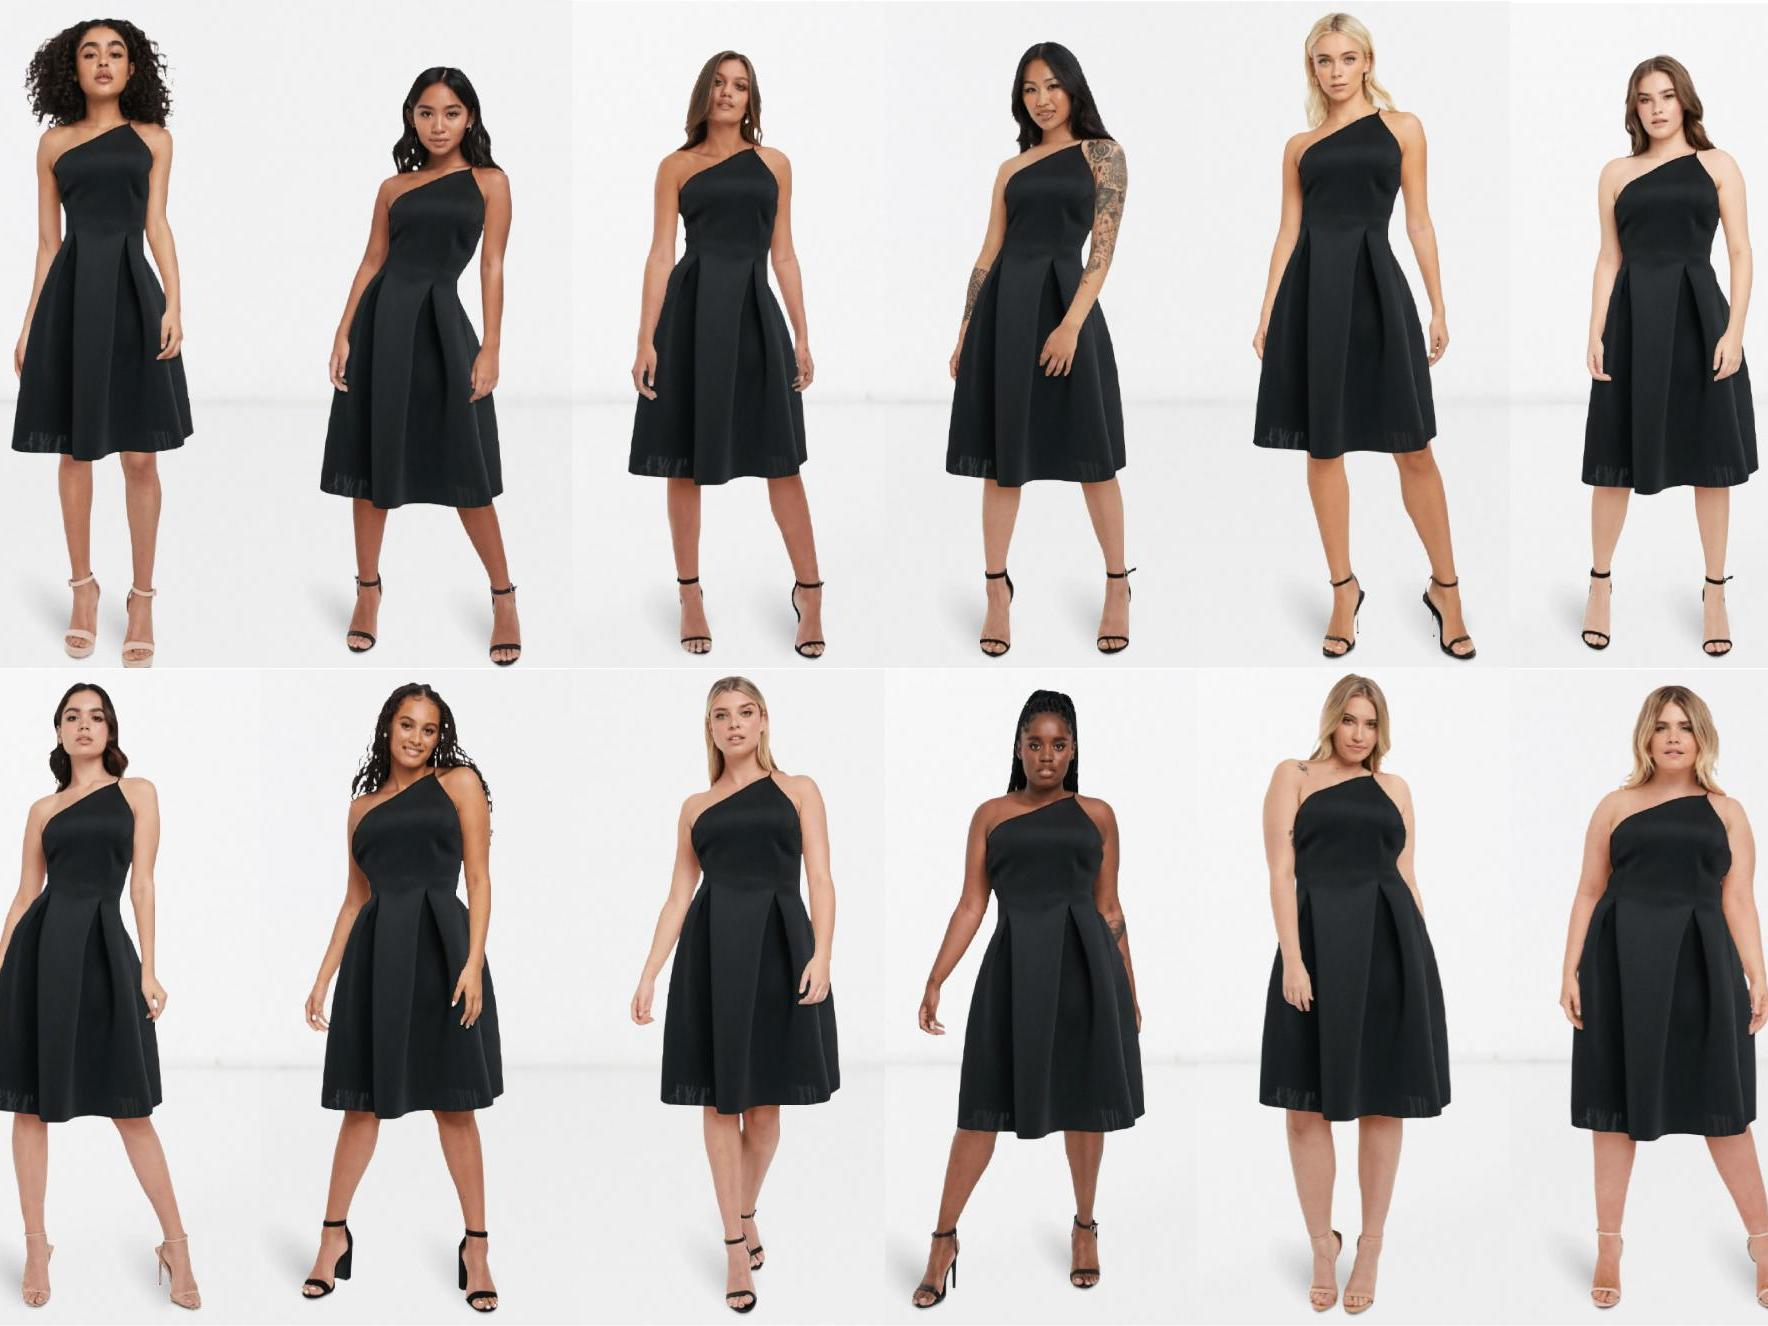 Asos launches tool allowing shoppers to see clothes on different body types